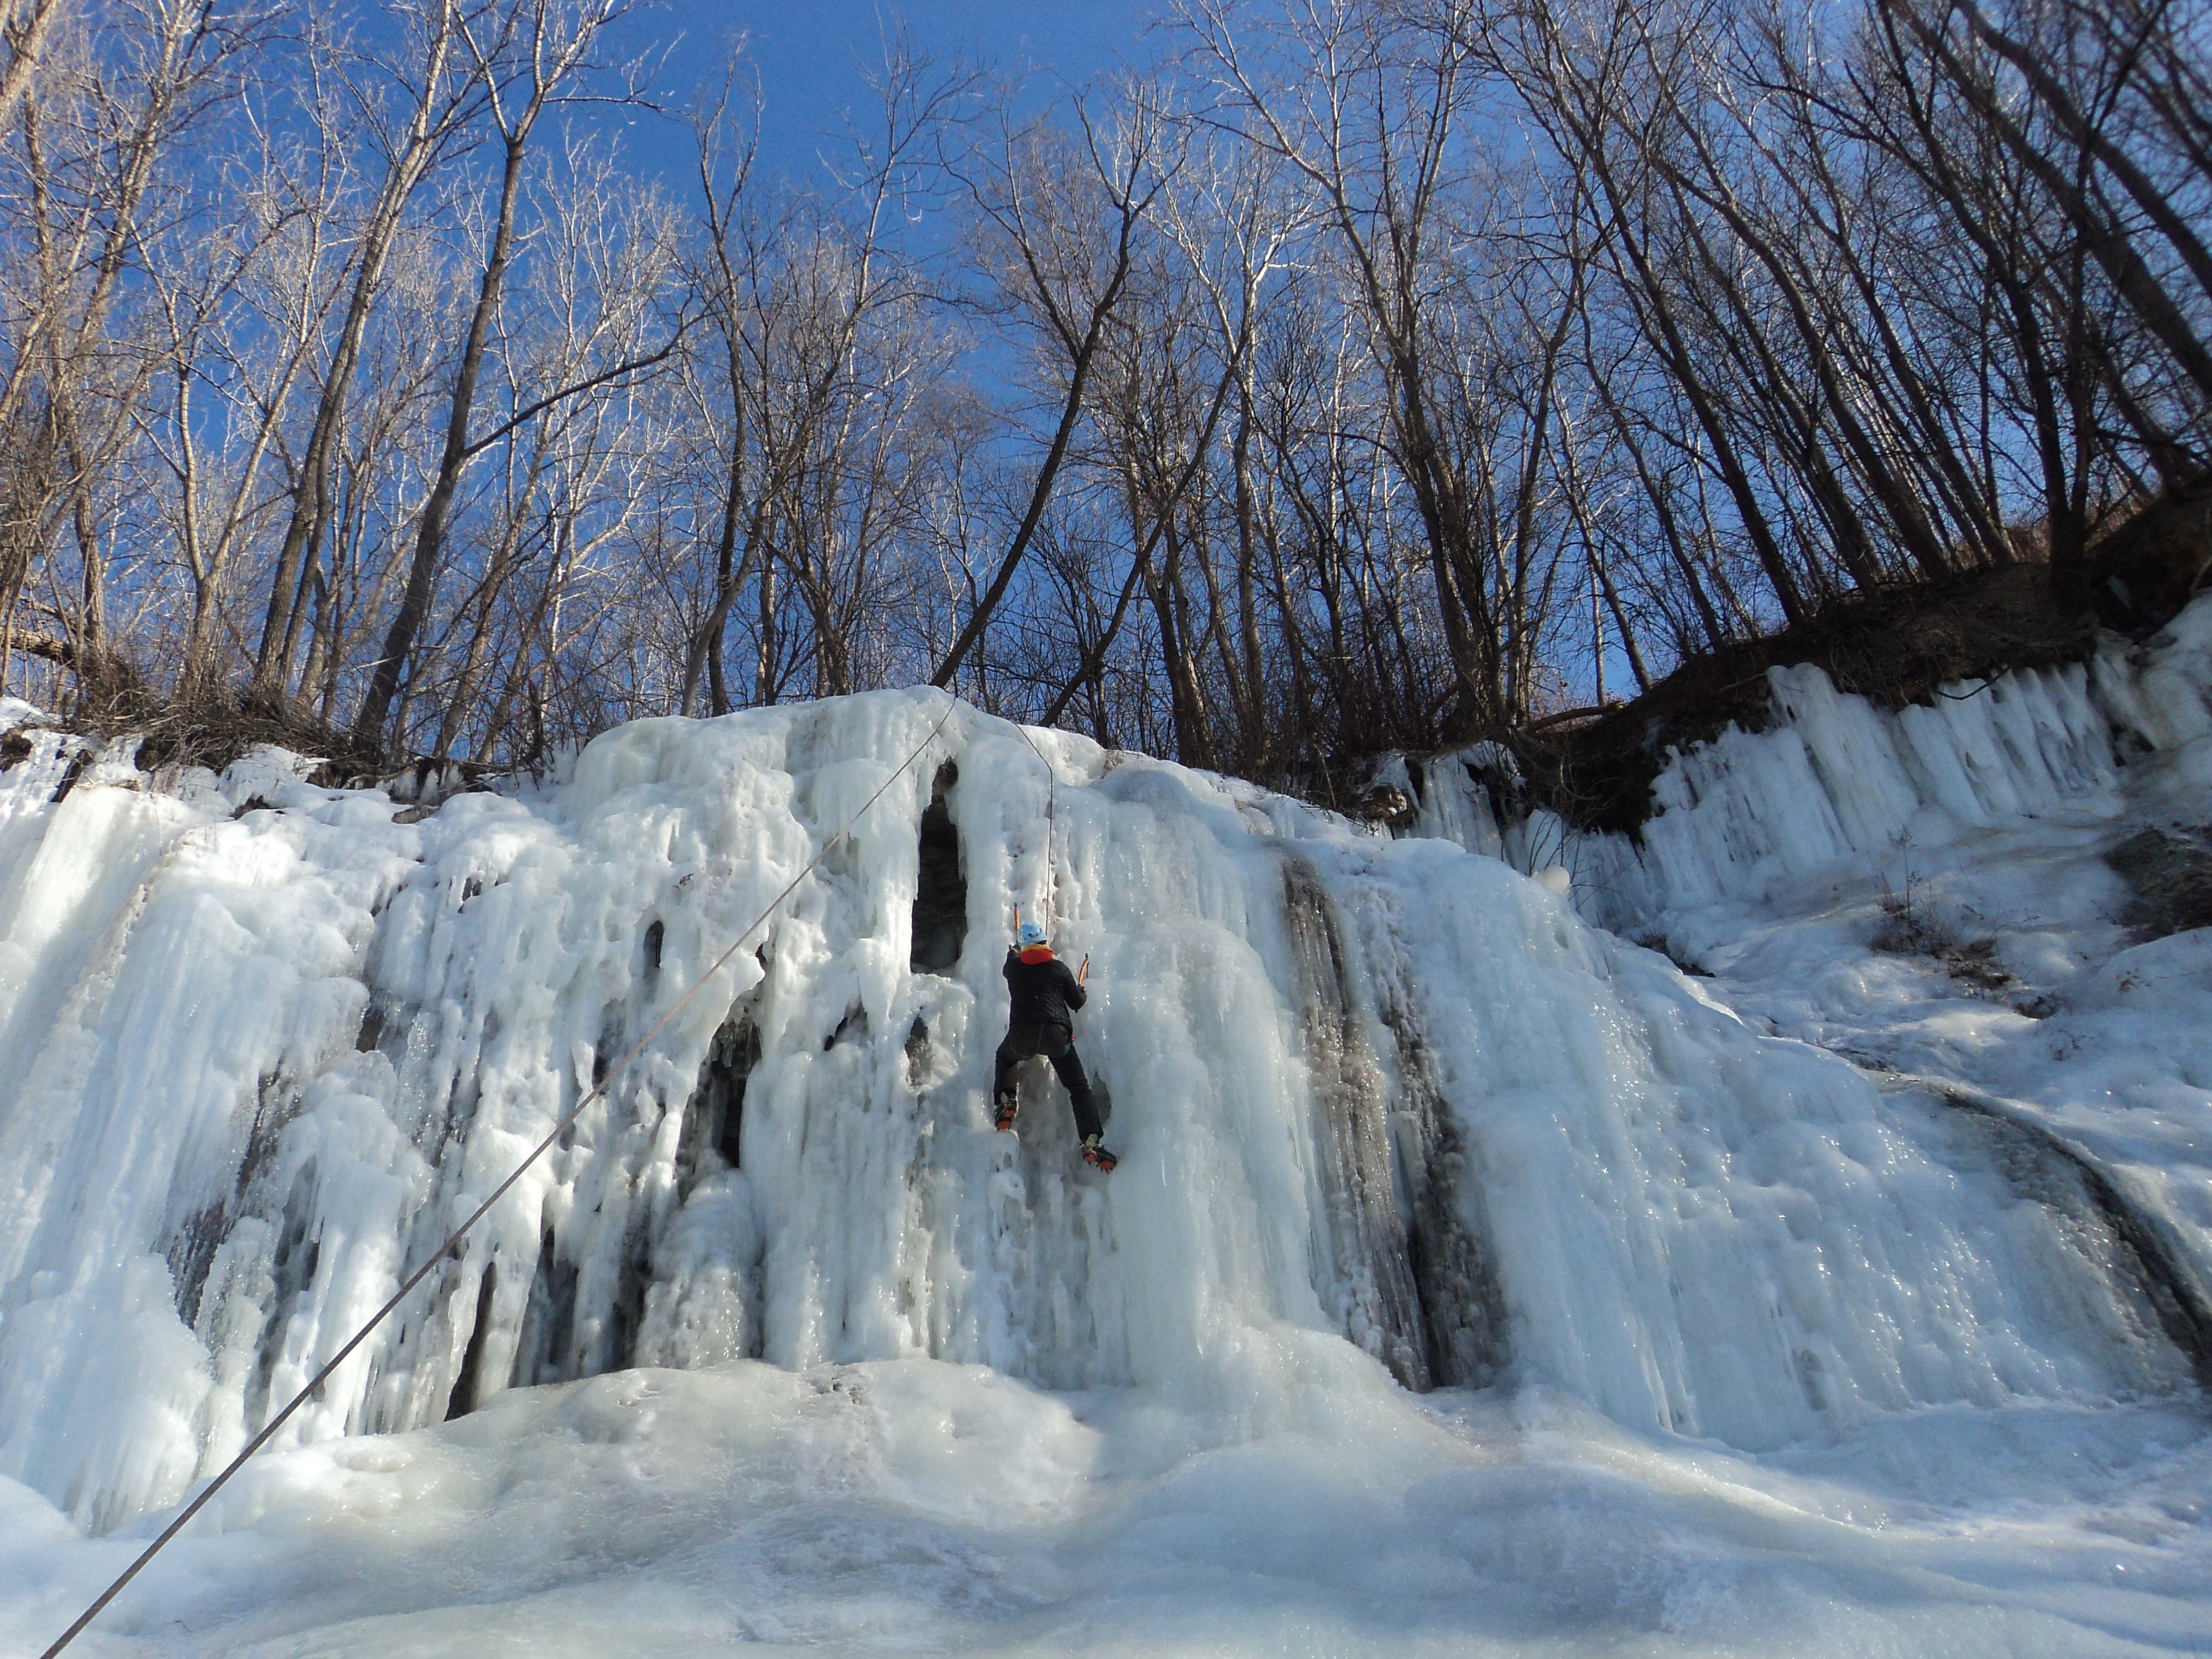 Ice-climbing at Lilydale Regional Park